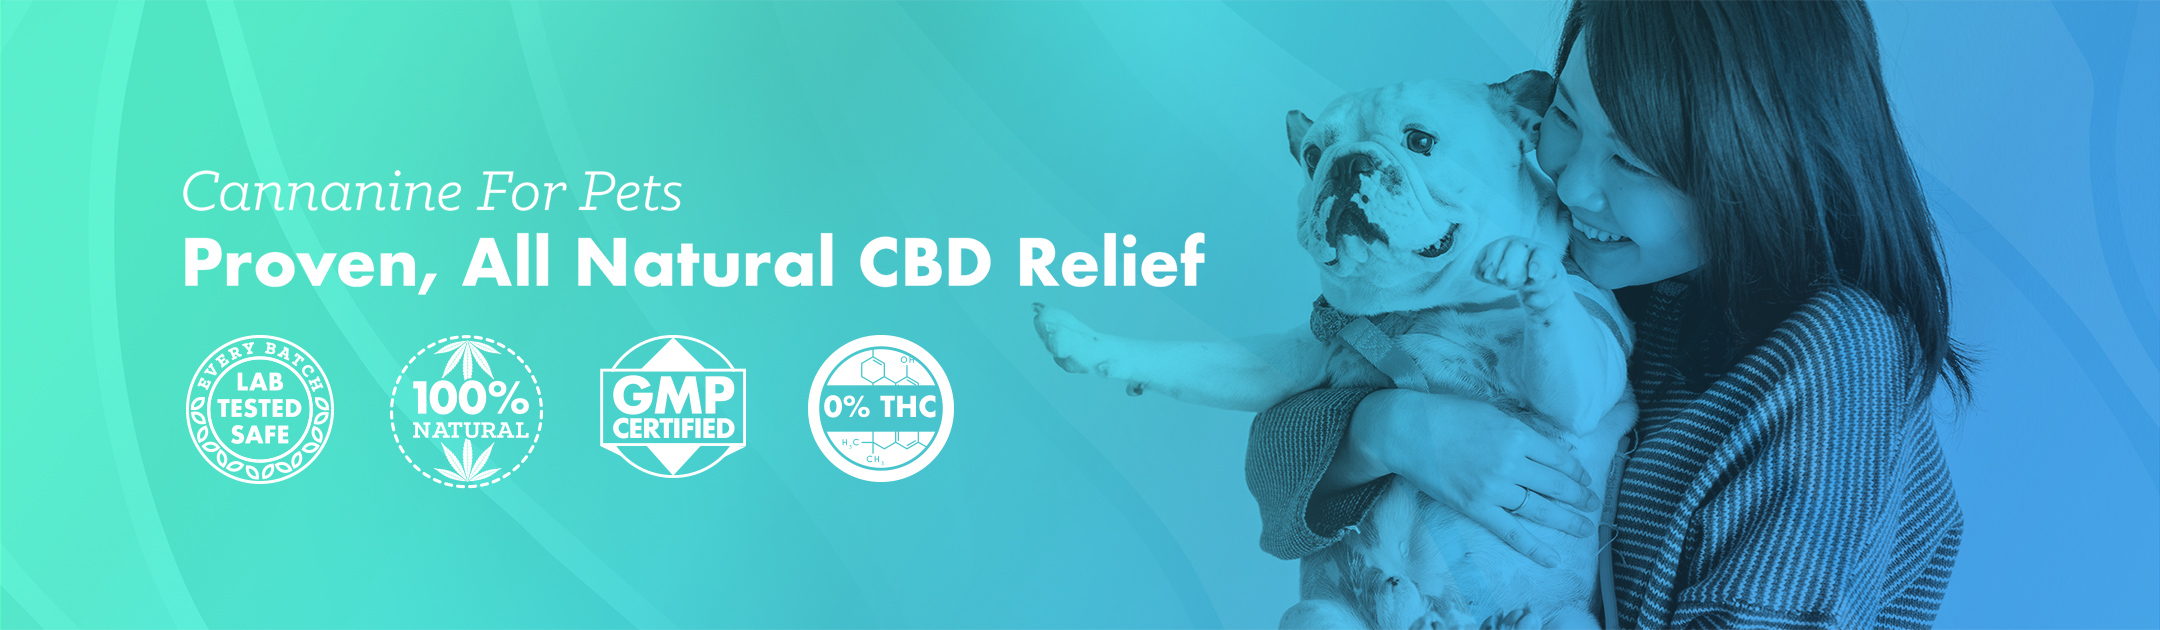 Cannanine for Pets - Proven, All Natural CBD Relief